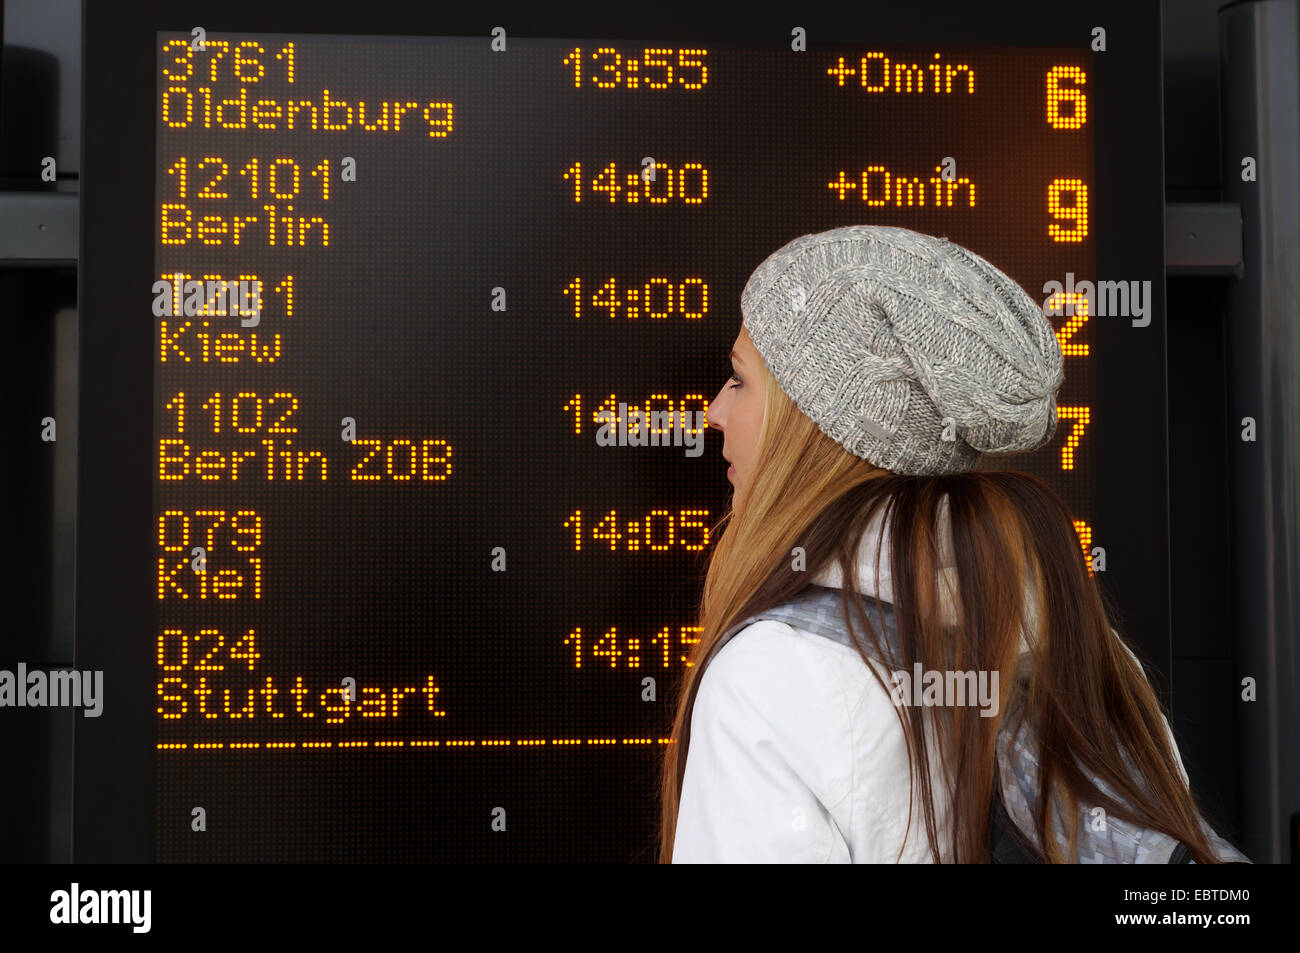 woman in front of destination board display at intercity bus station in germany - Stock Image